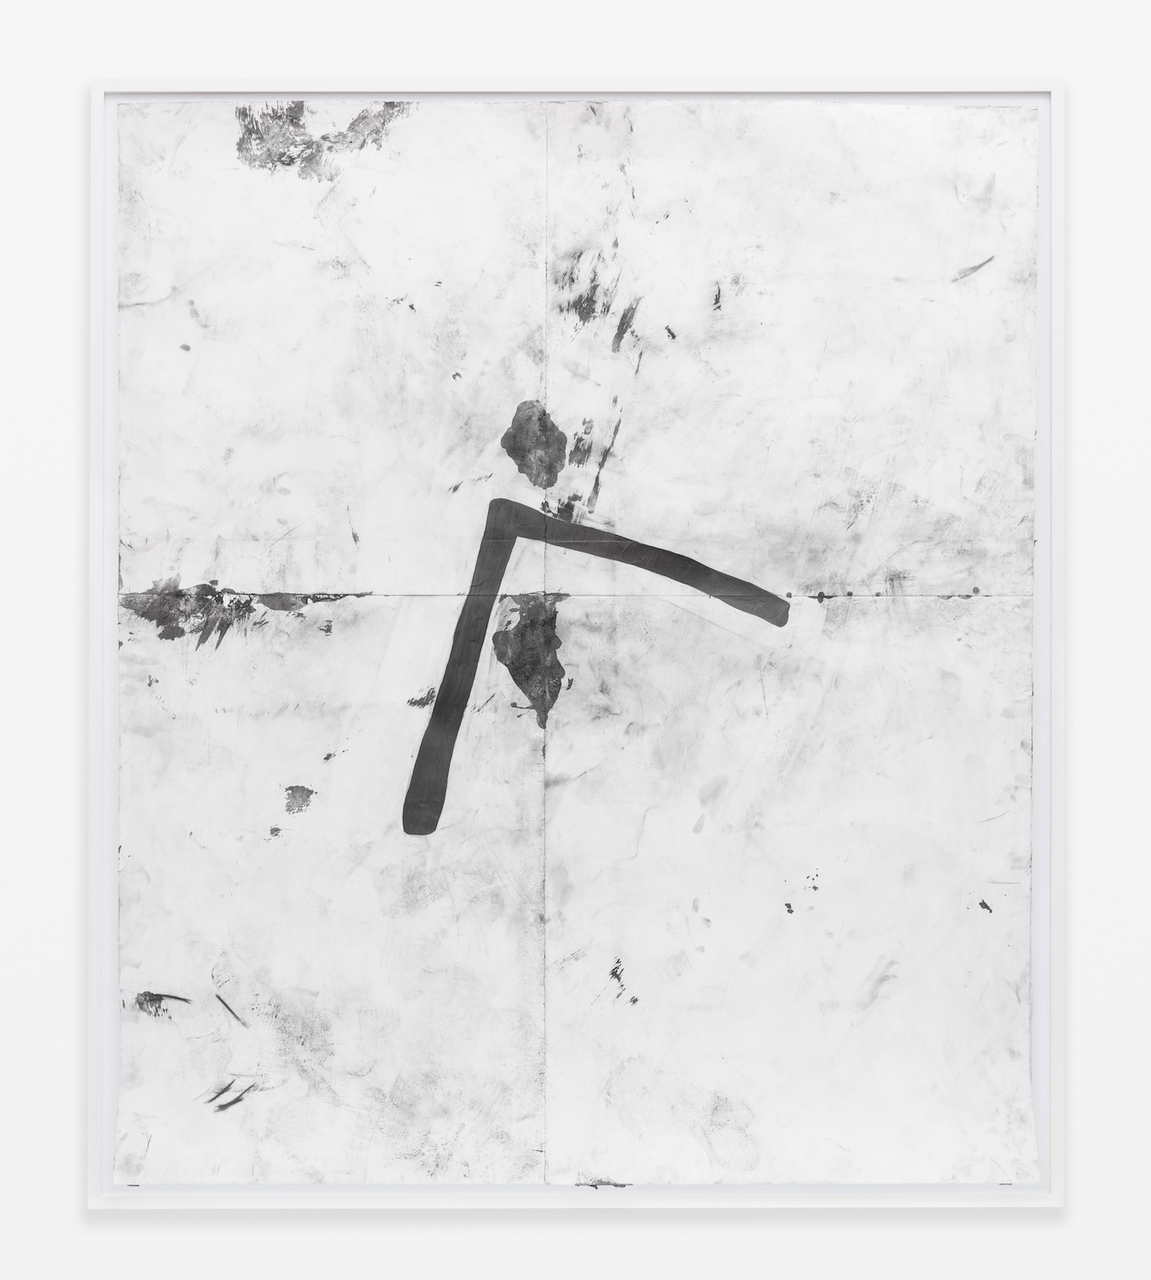 16.Lewis_Chunk, 2015_Pencil, graphite powder, and tape on paper_83.75 x 71.5 inches